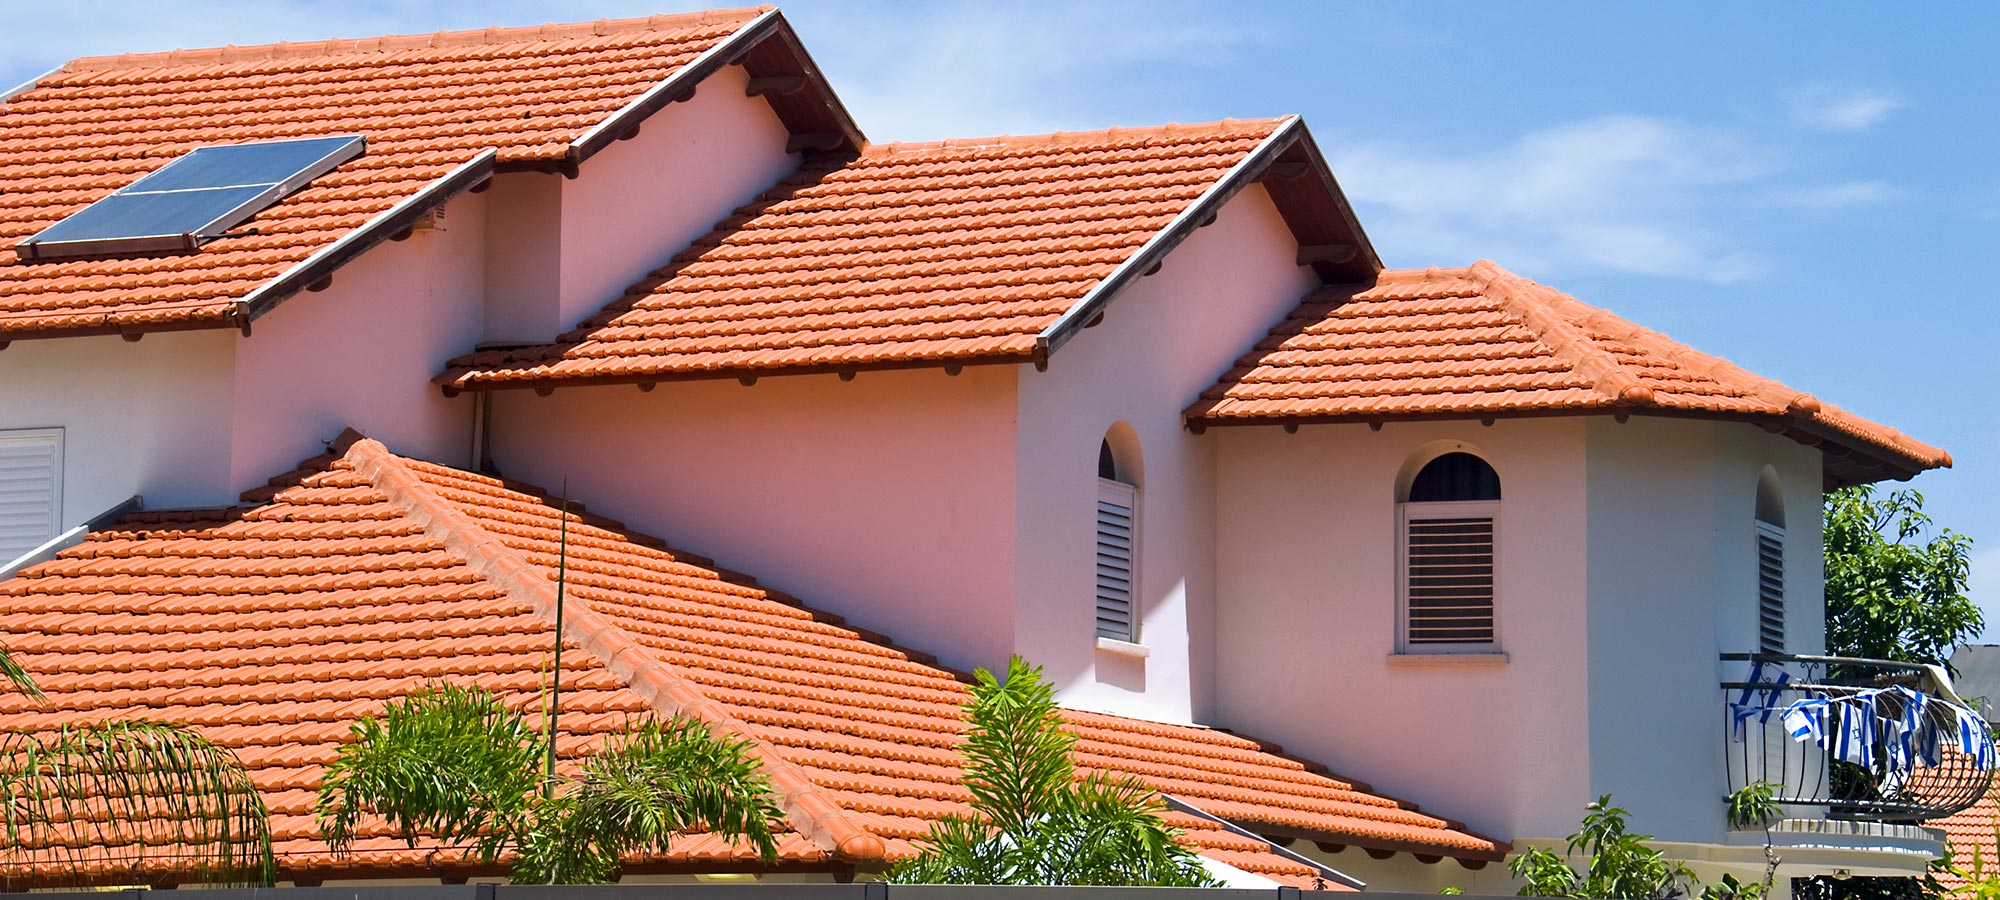 Tri State Roofing Roofing Contractor West Palm Beach Fl